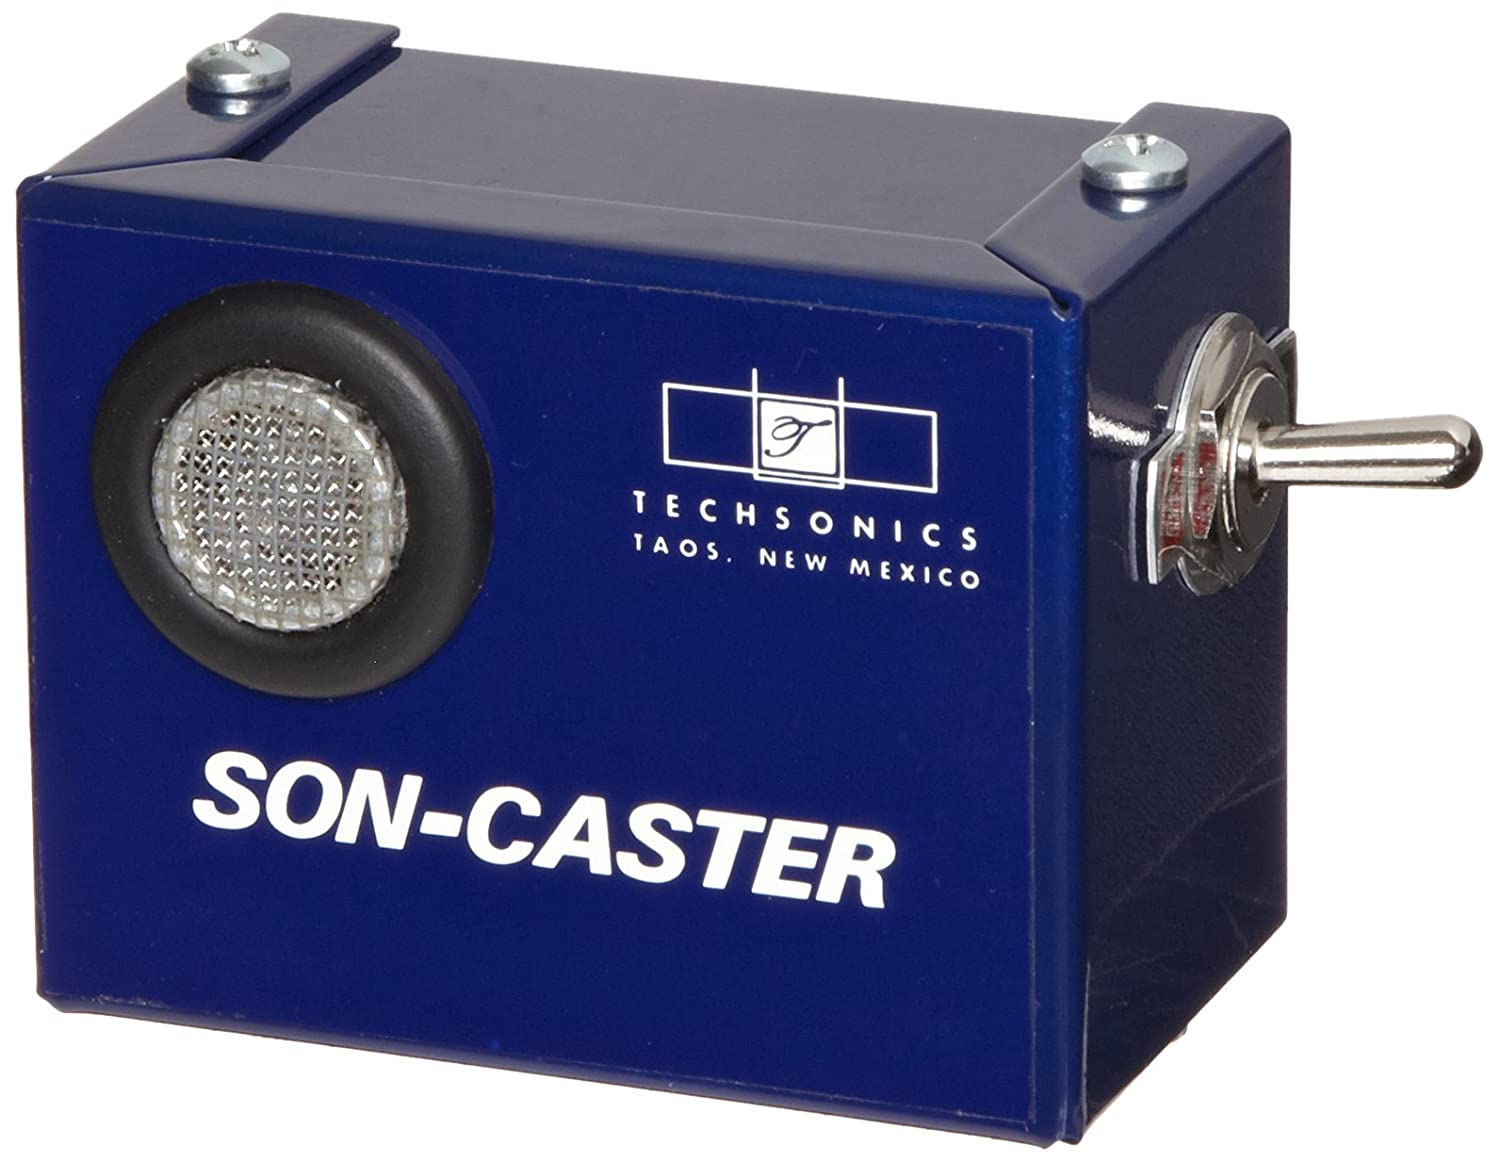 Megger 569001-7 Ultrasonic Tone Generator for Leak and Corona Detector: Leak Detection Tools: Amazon.com: Industrial & Scientific